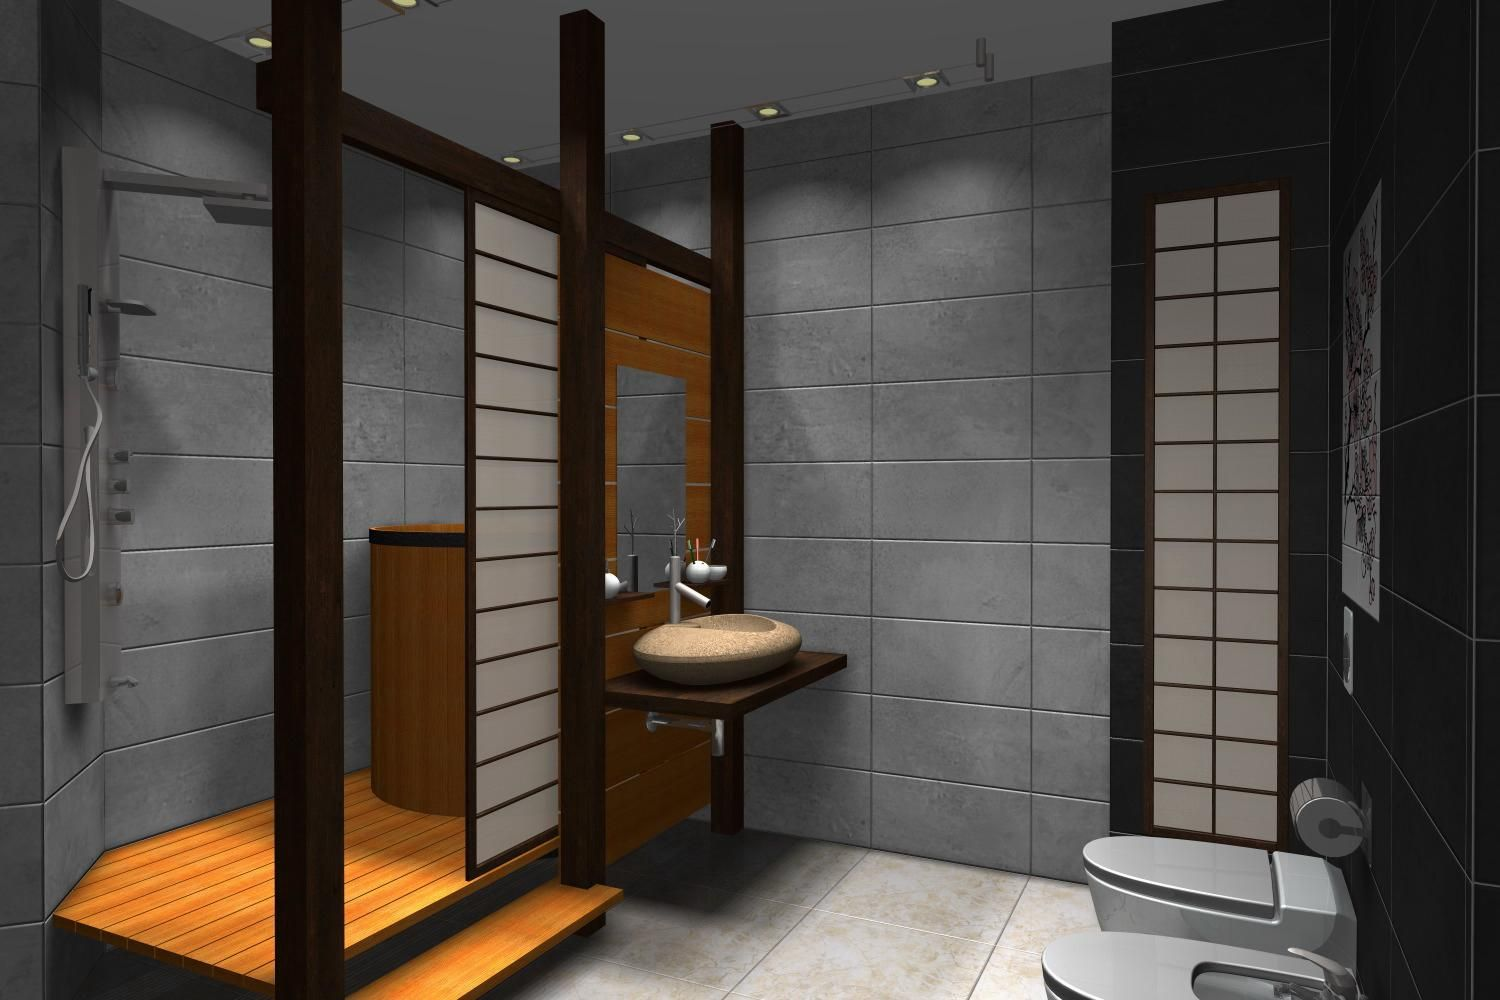 Japanese Style Interior Design Gallery Of Modern Design Japanese Style Bathroom Homyxl